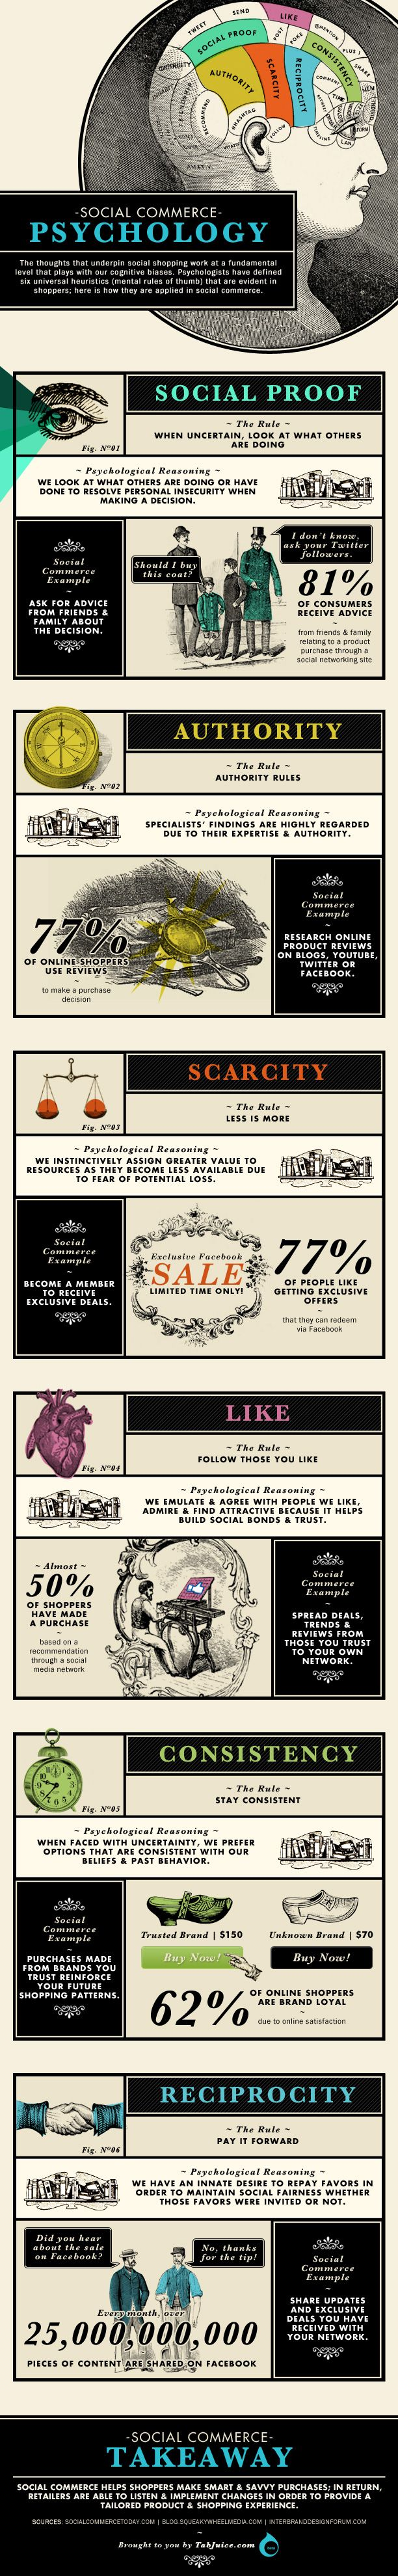 Psychology Of Social Commerce [INFOGRAPHIC]